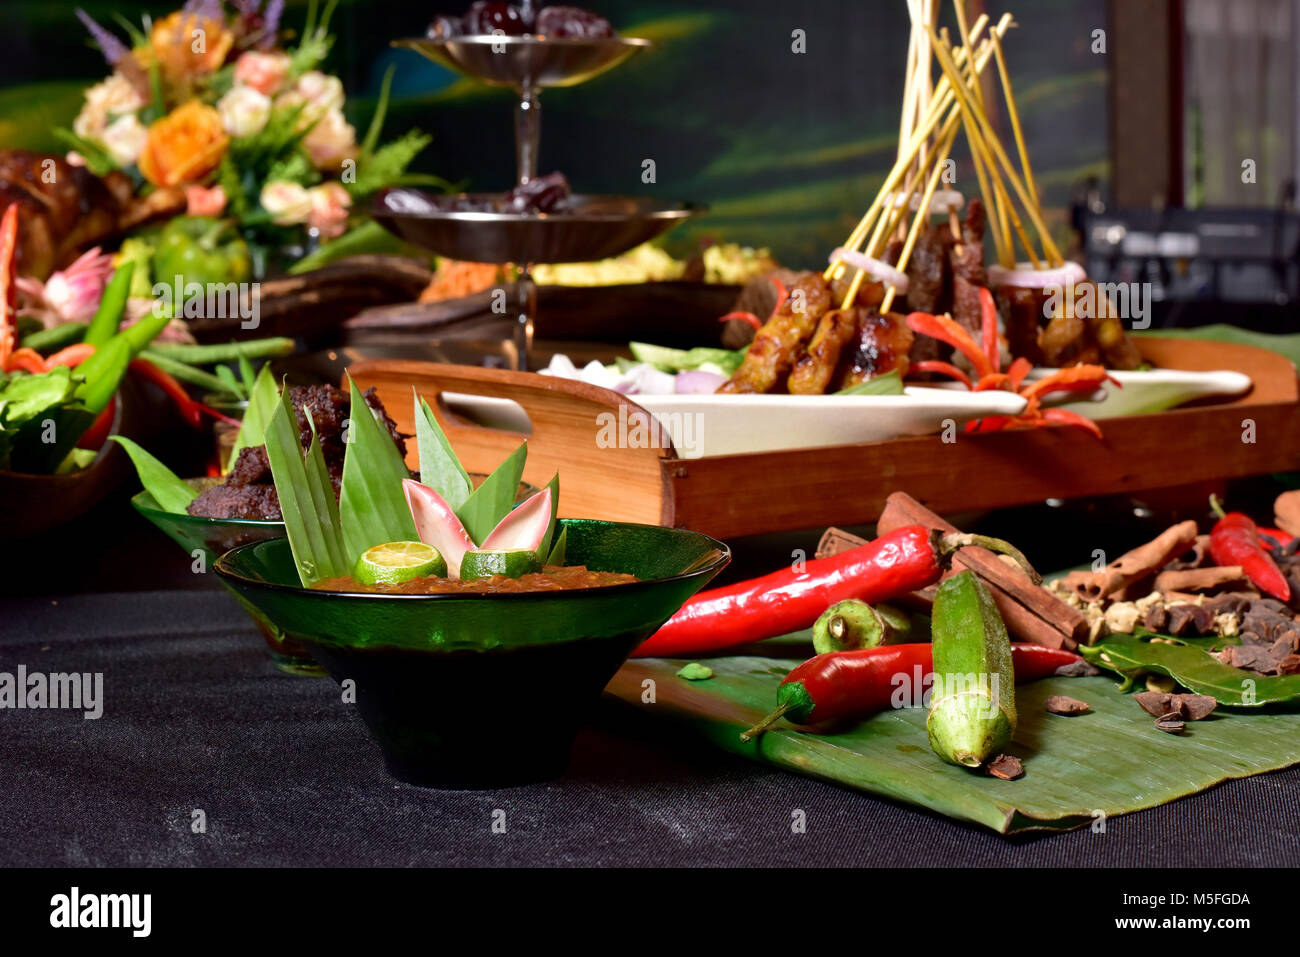 21st Feb 2018 : Images from Ramadan Promo photoshoot  at The Mines Resort & Golf Club. Pix by Mike Casper - Stock Image